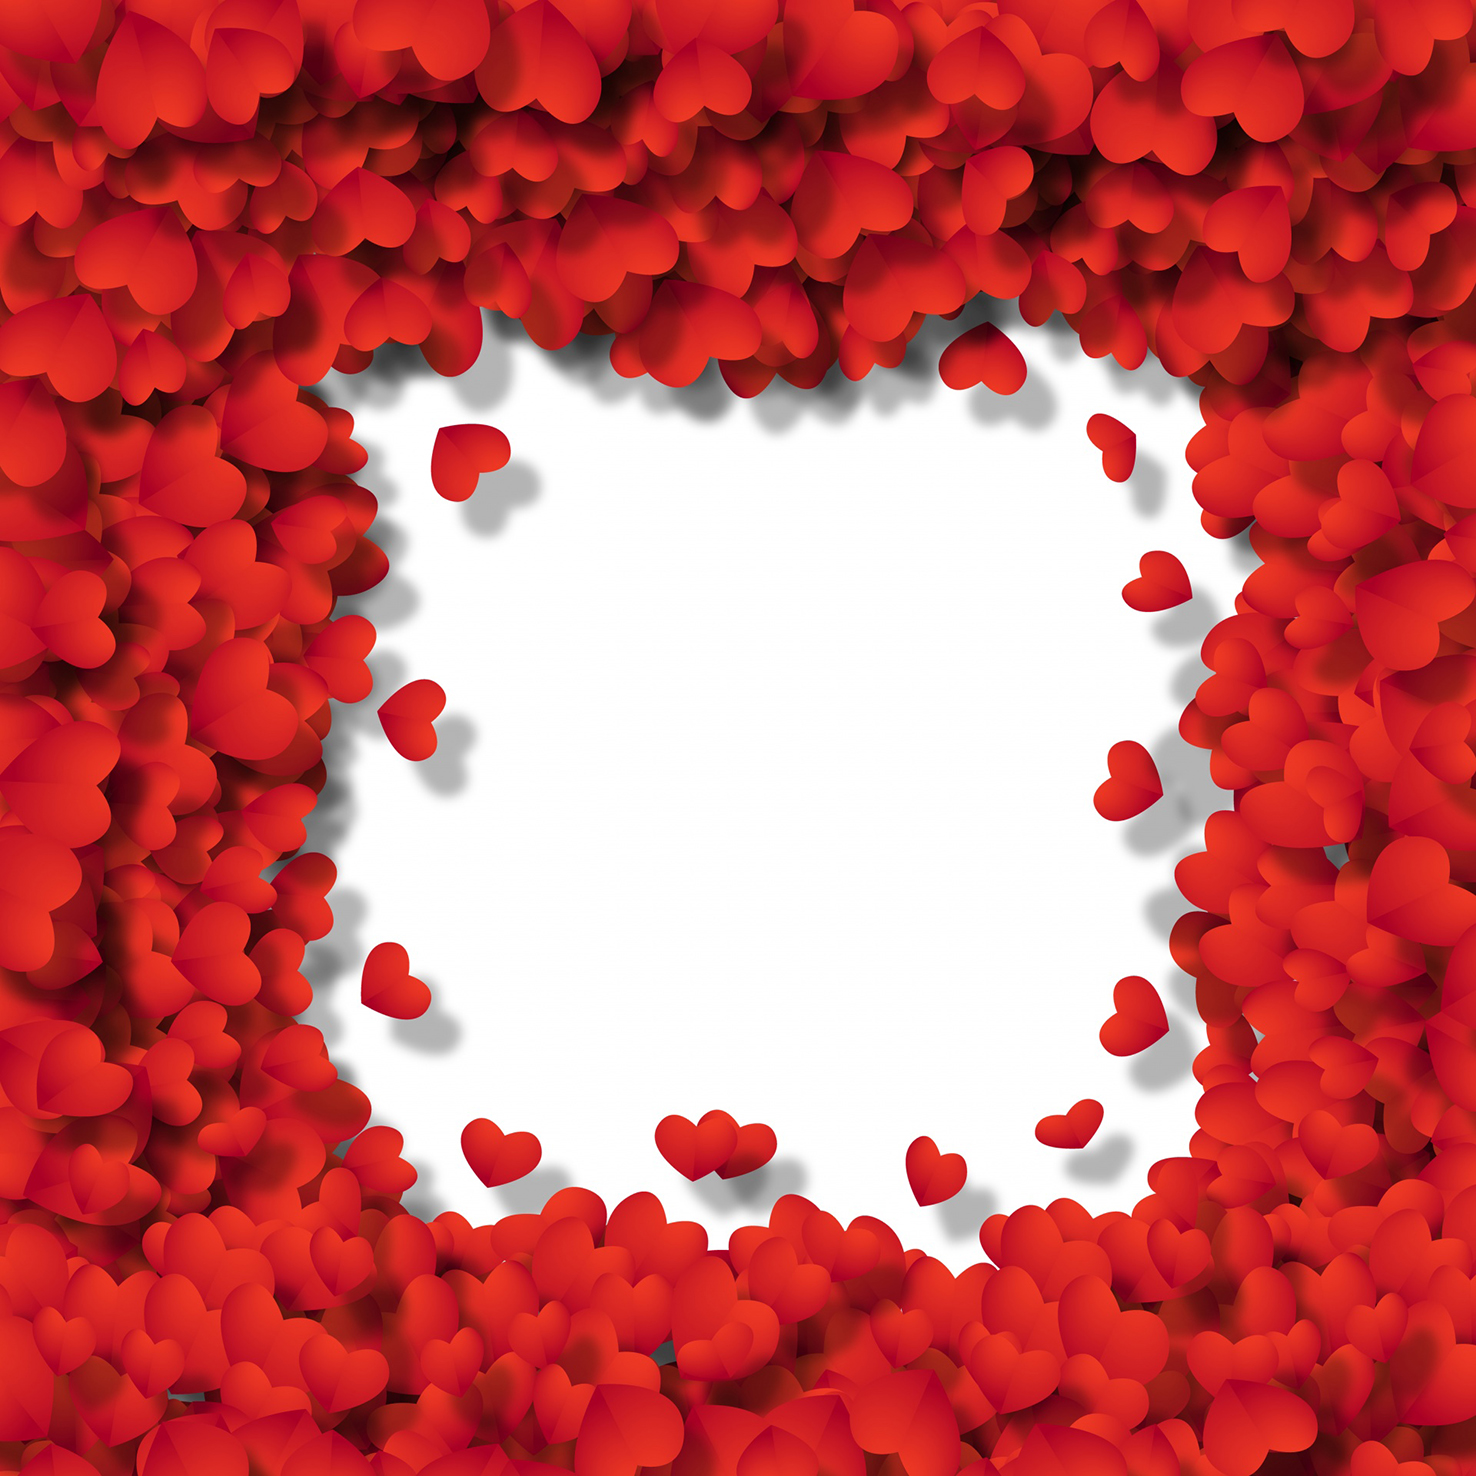 Frame with lots of red hearts